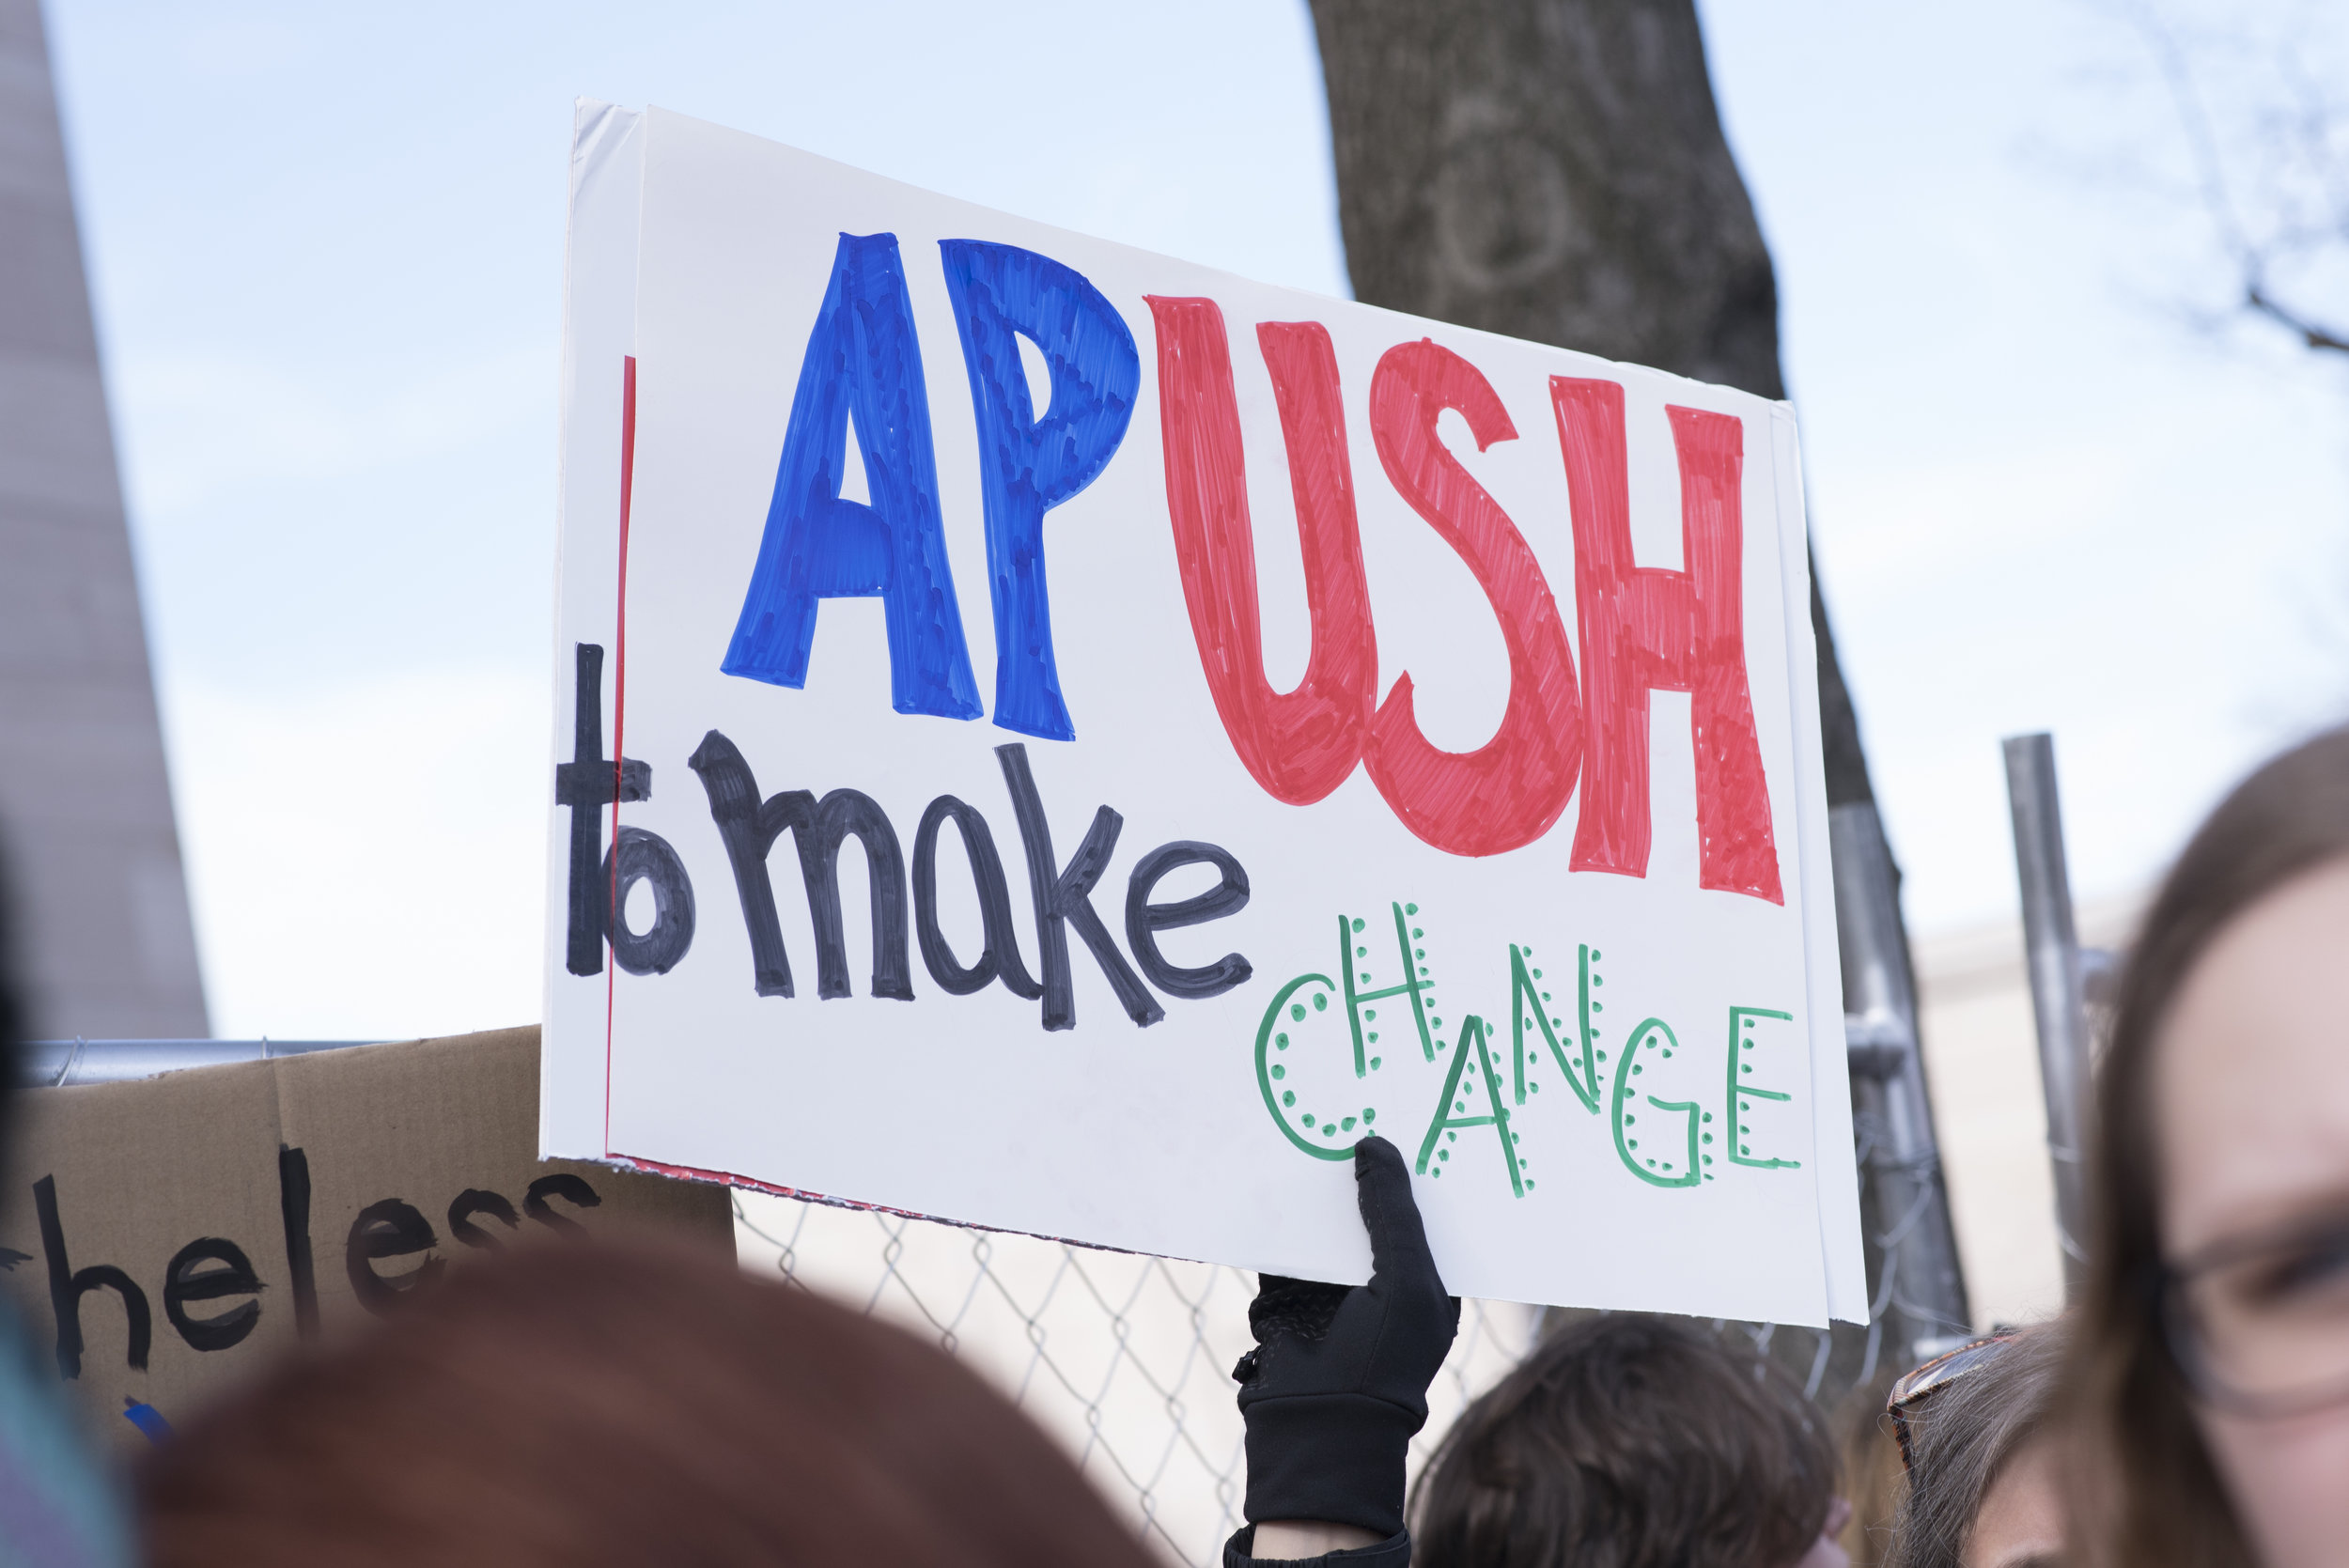 """March for Our Lives, Washington, DC: March 24, 2018. Student holding sign, """"APUSH to make change."""""""